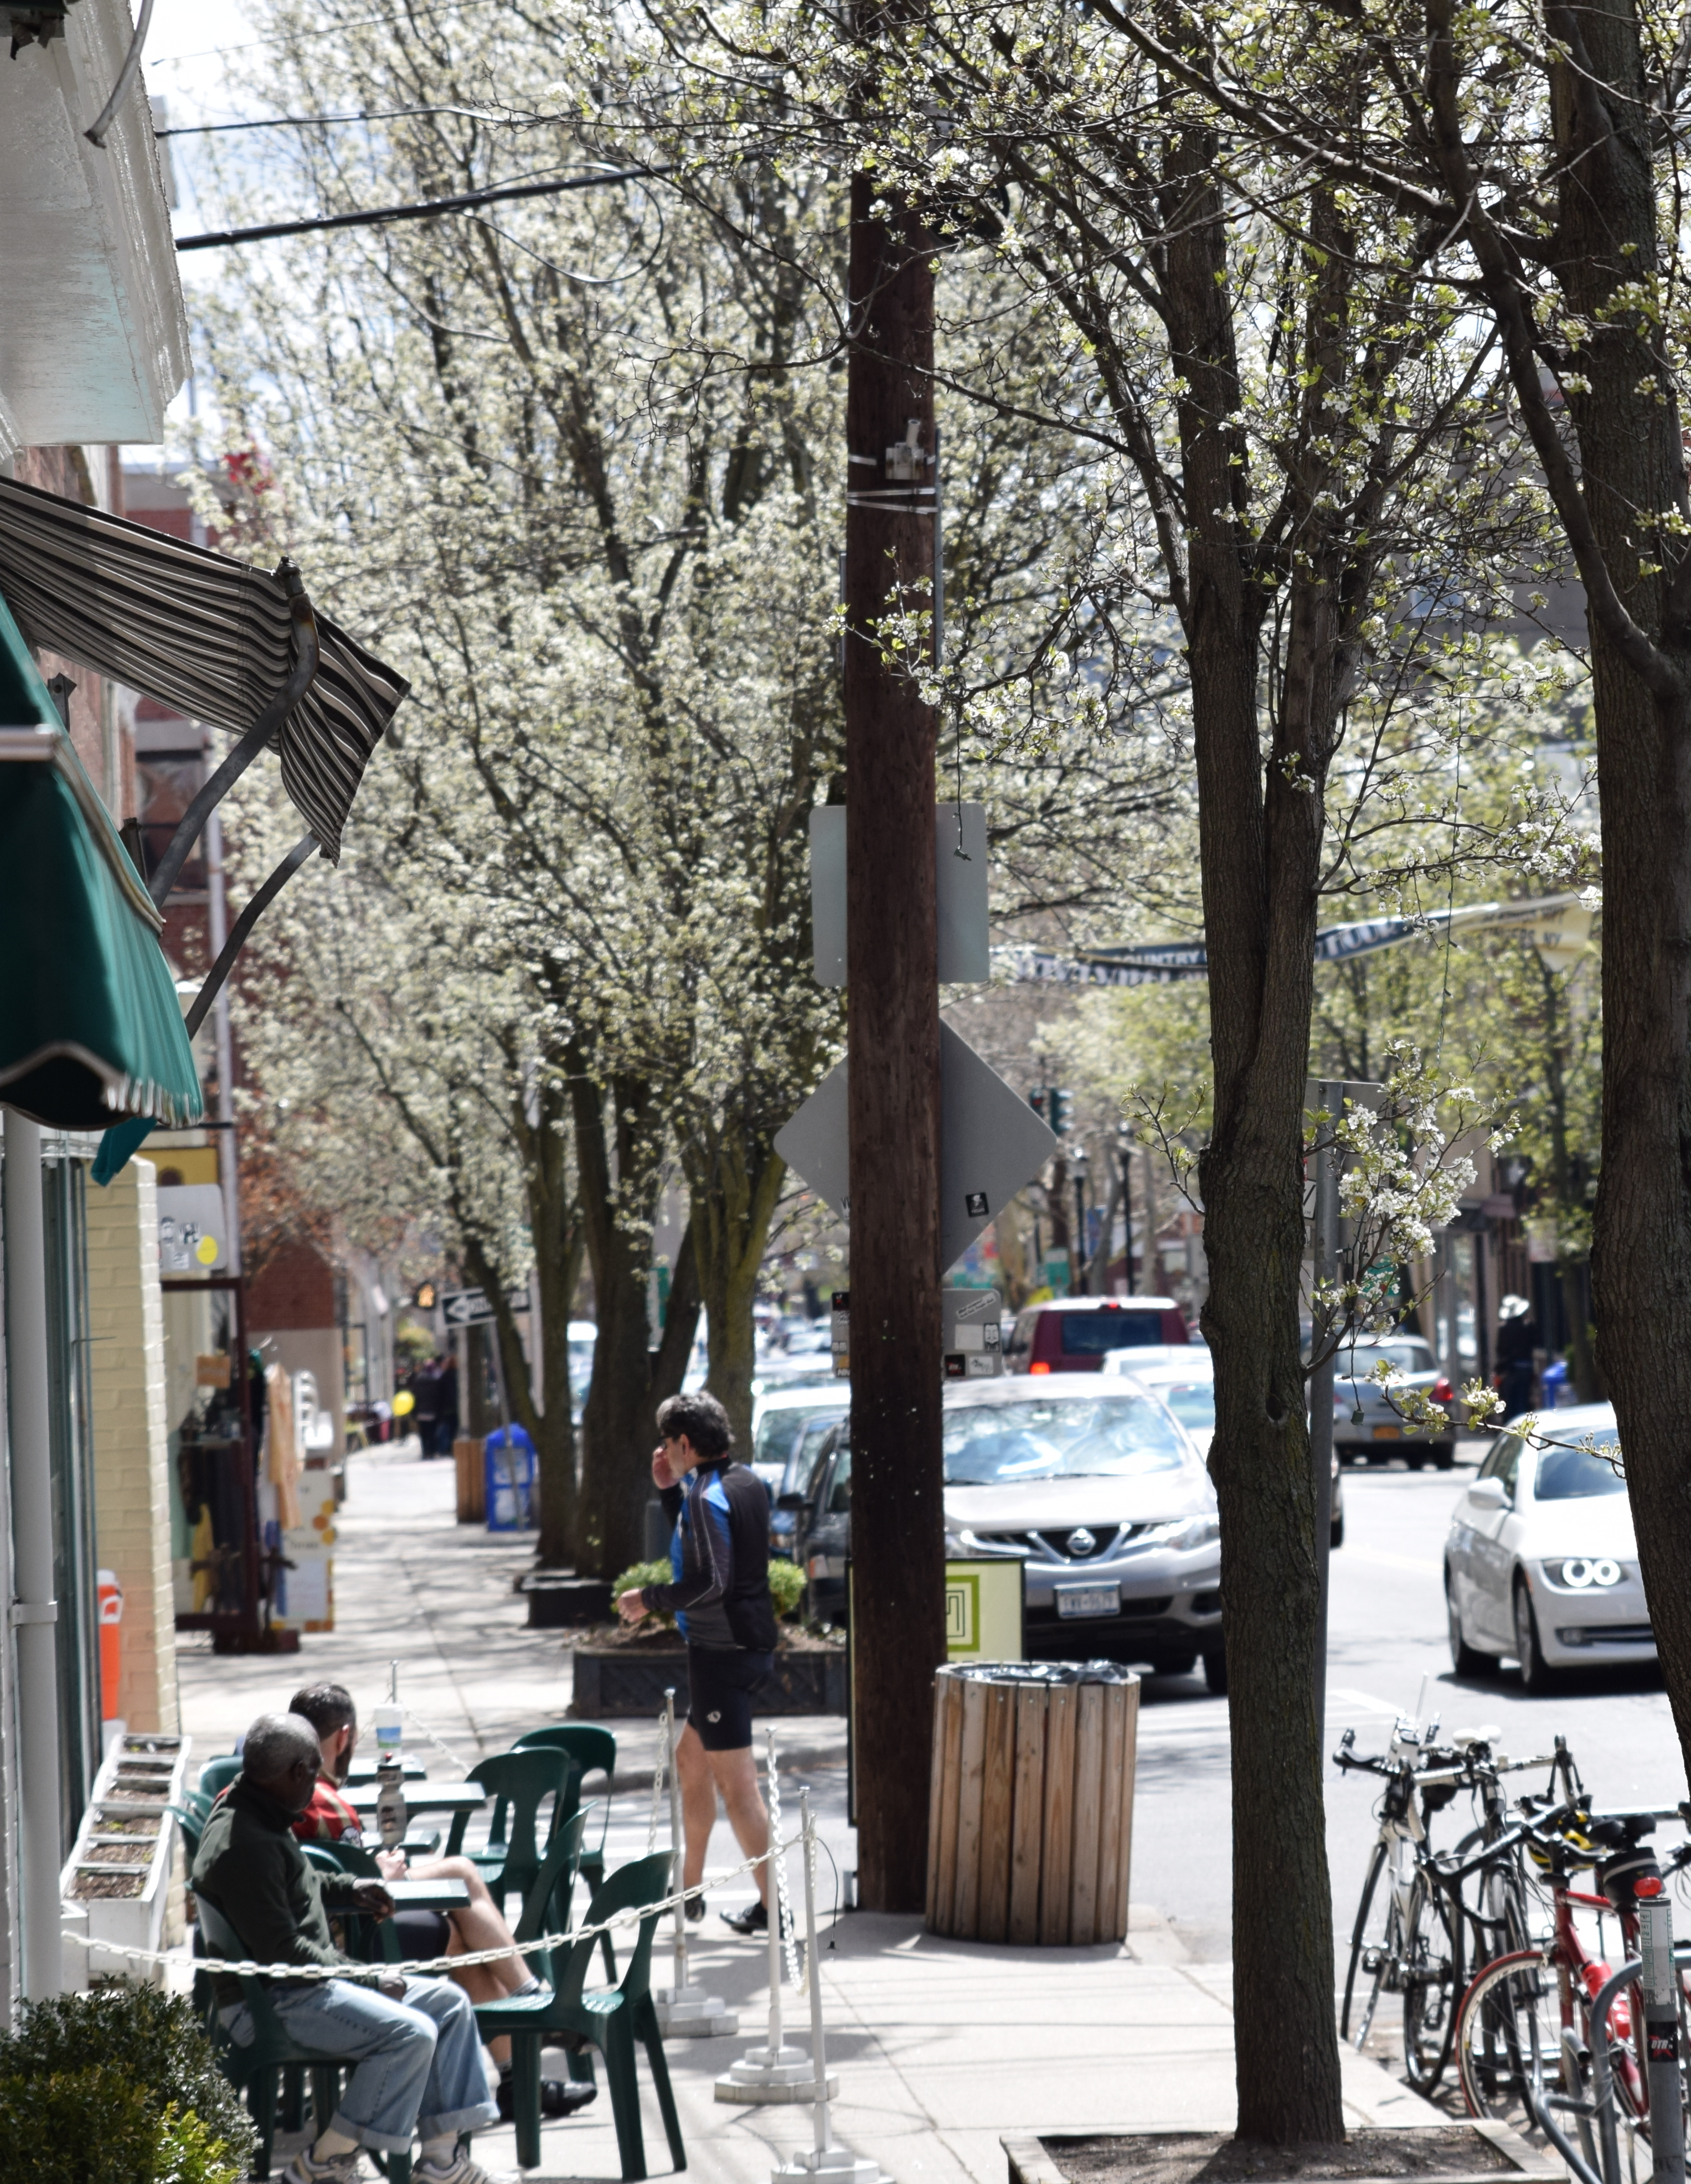 Spring Fling Promenade at Downtown Nyack